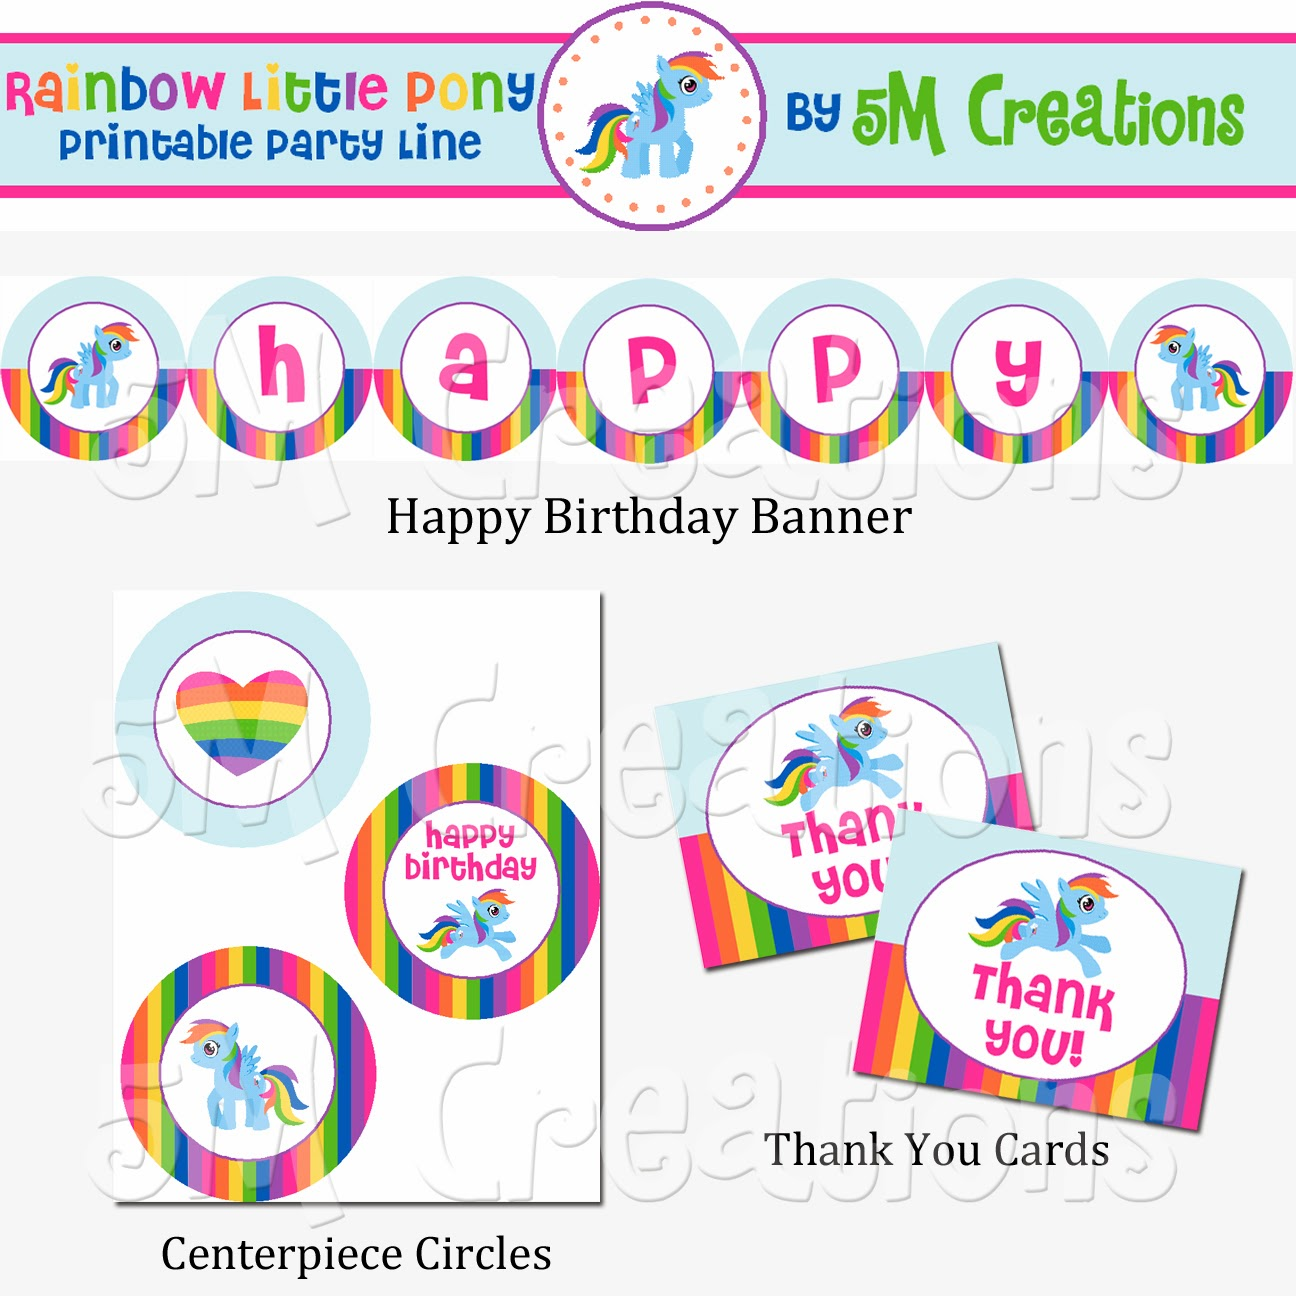 5M Creations: My Little Pony Inspired Birthday Party - Rainbow Pony ...